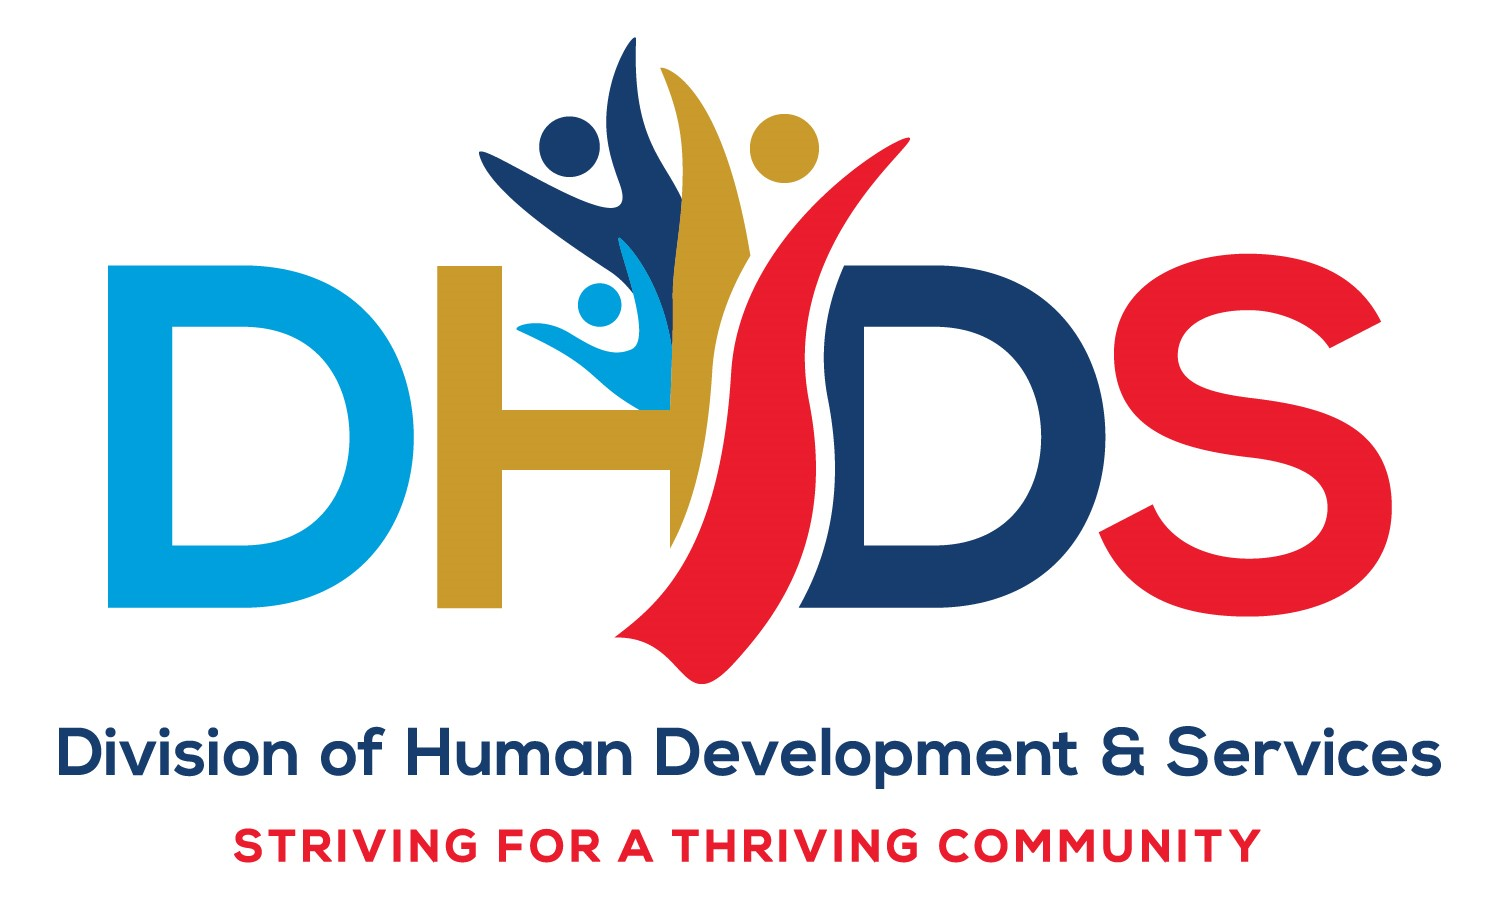 DHDS | Division of Human Development & Services